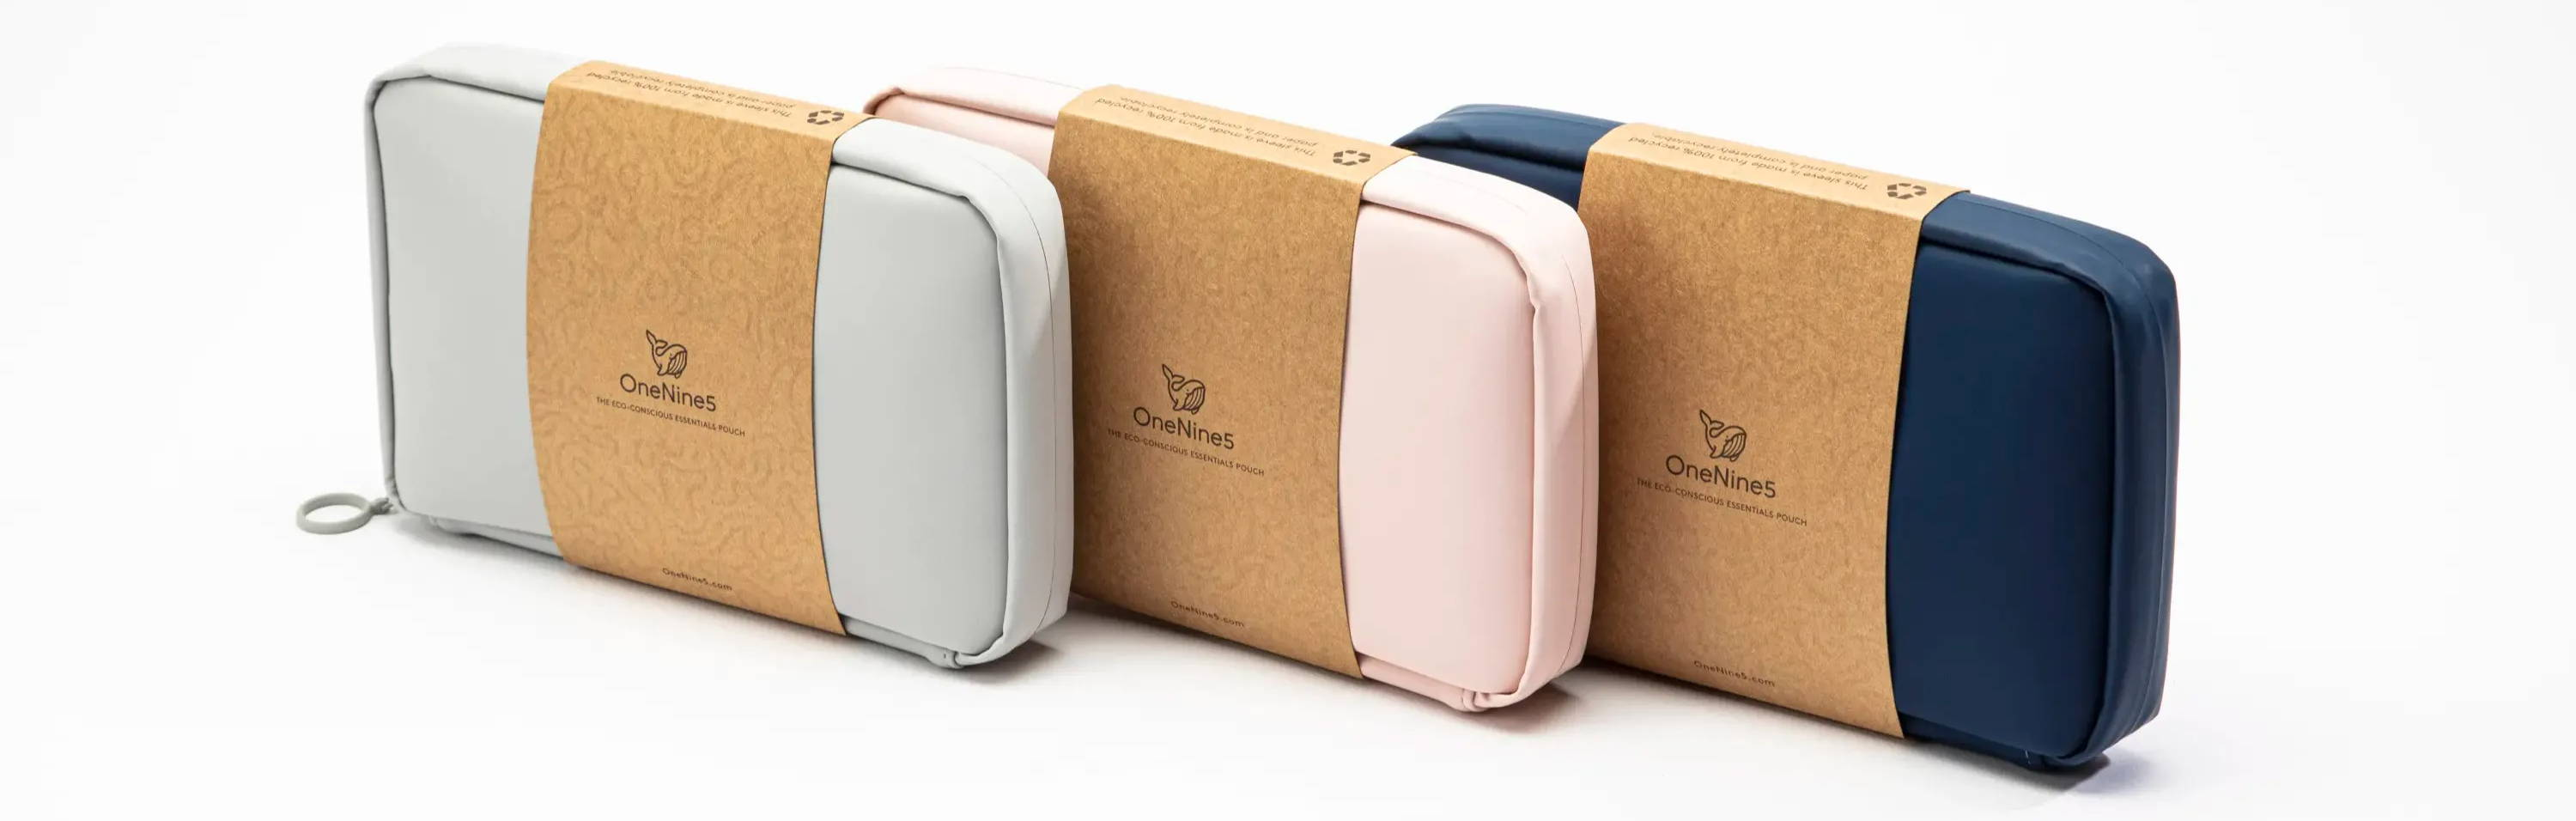 Moeraki Grey, Komodo Pink & Havelock Blue Makeup Pouch lined up on a white background. Each makeup pouch is packaged in a 100% recycled kraft paper sleeve.